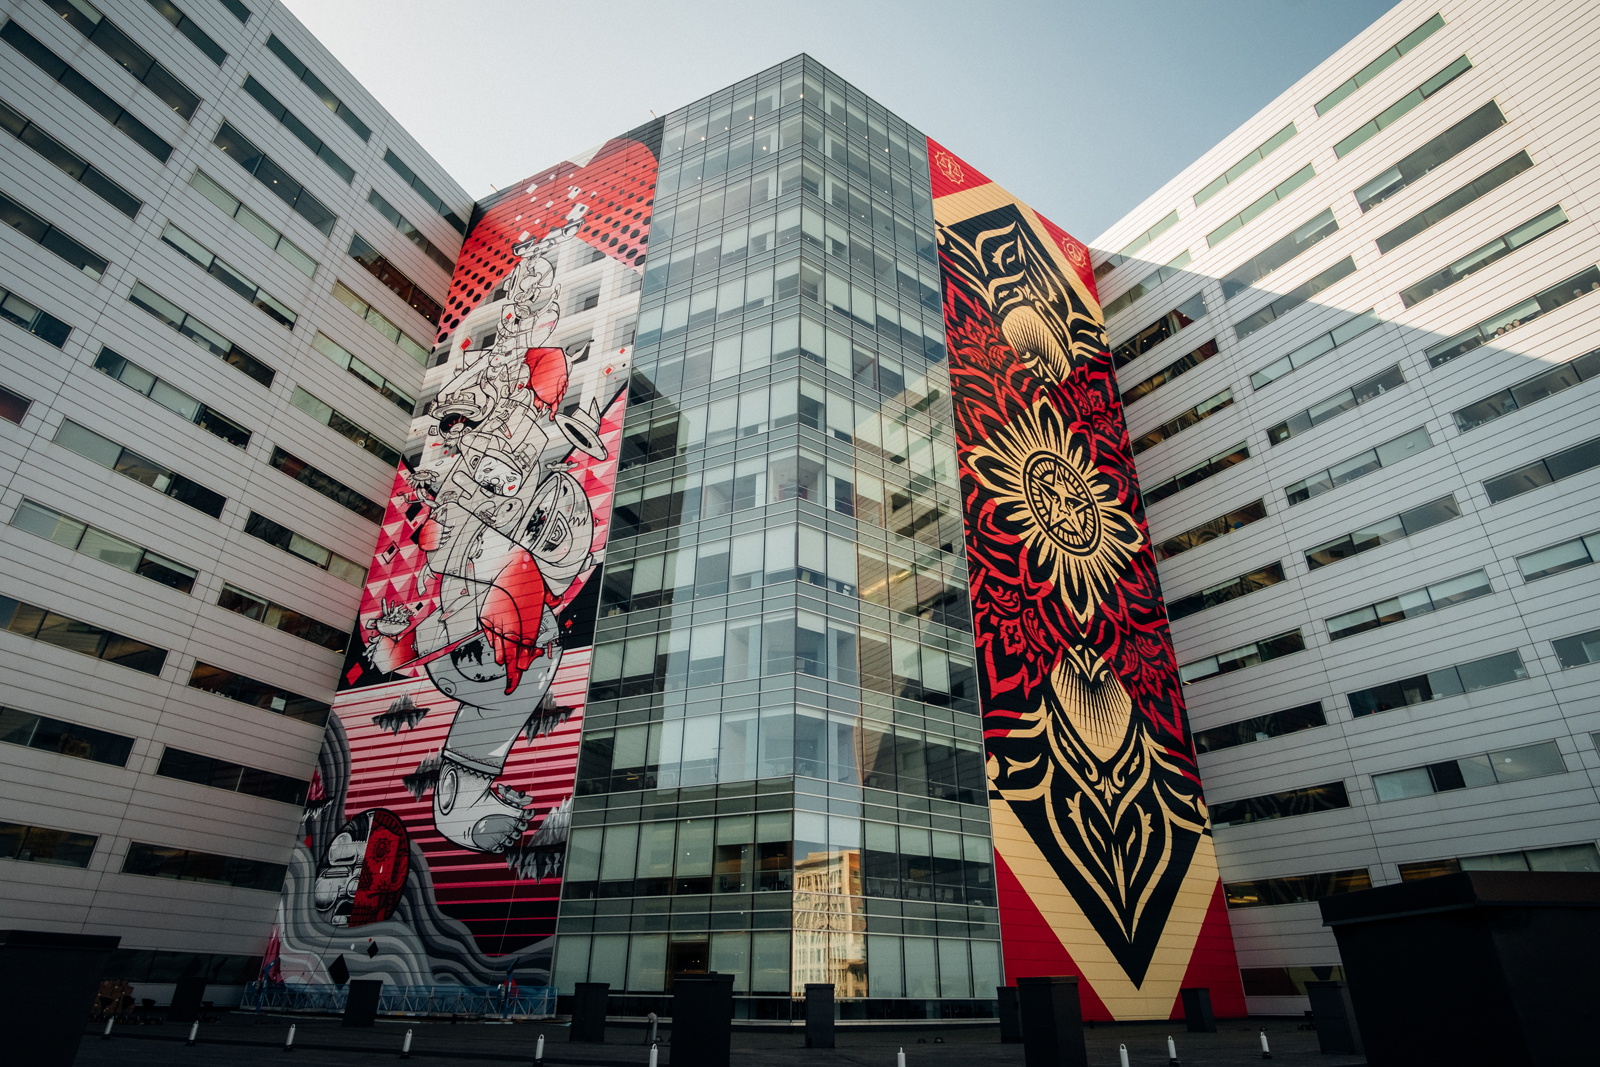 """Brothers Davide And Raoul Perre (How & Nosm) Created A 184-foot Tall By 60-foot Wide Mural Called """"Balancing Act"""" On The Side Of One Campus Martius."""